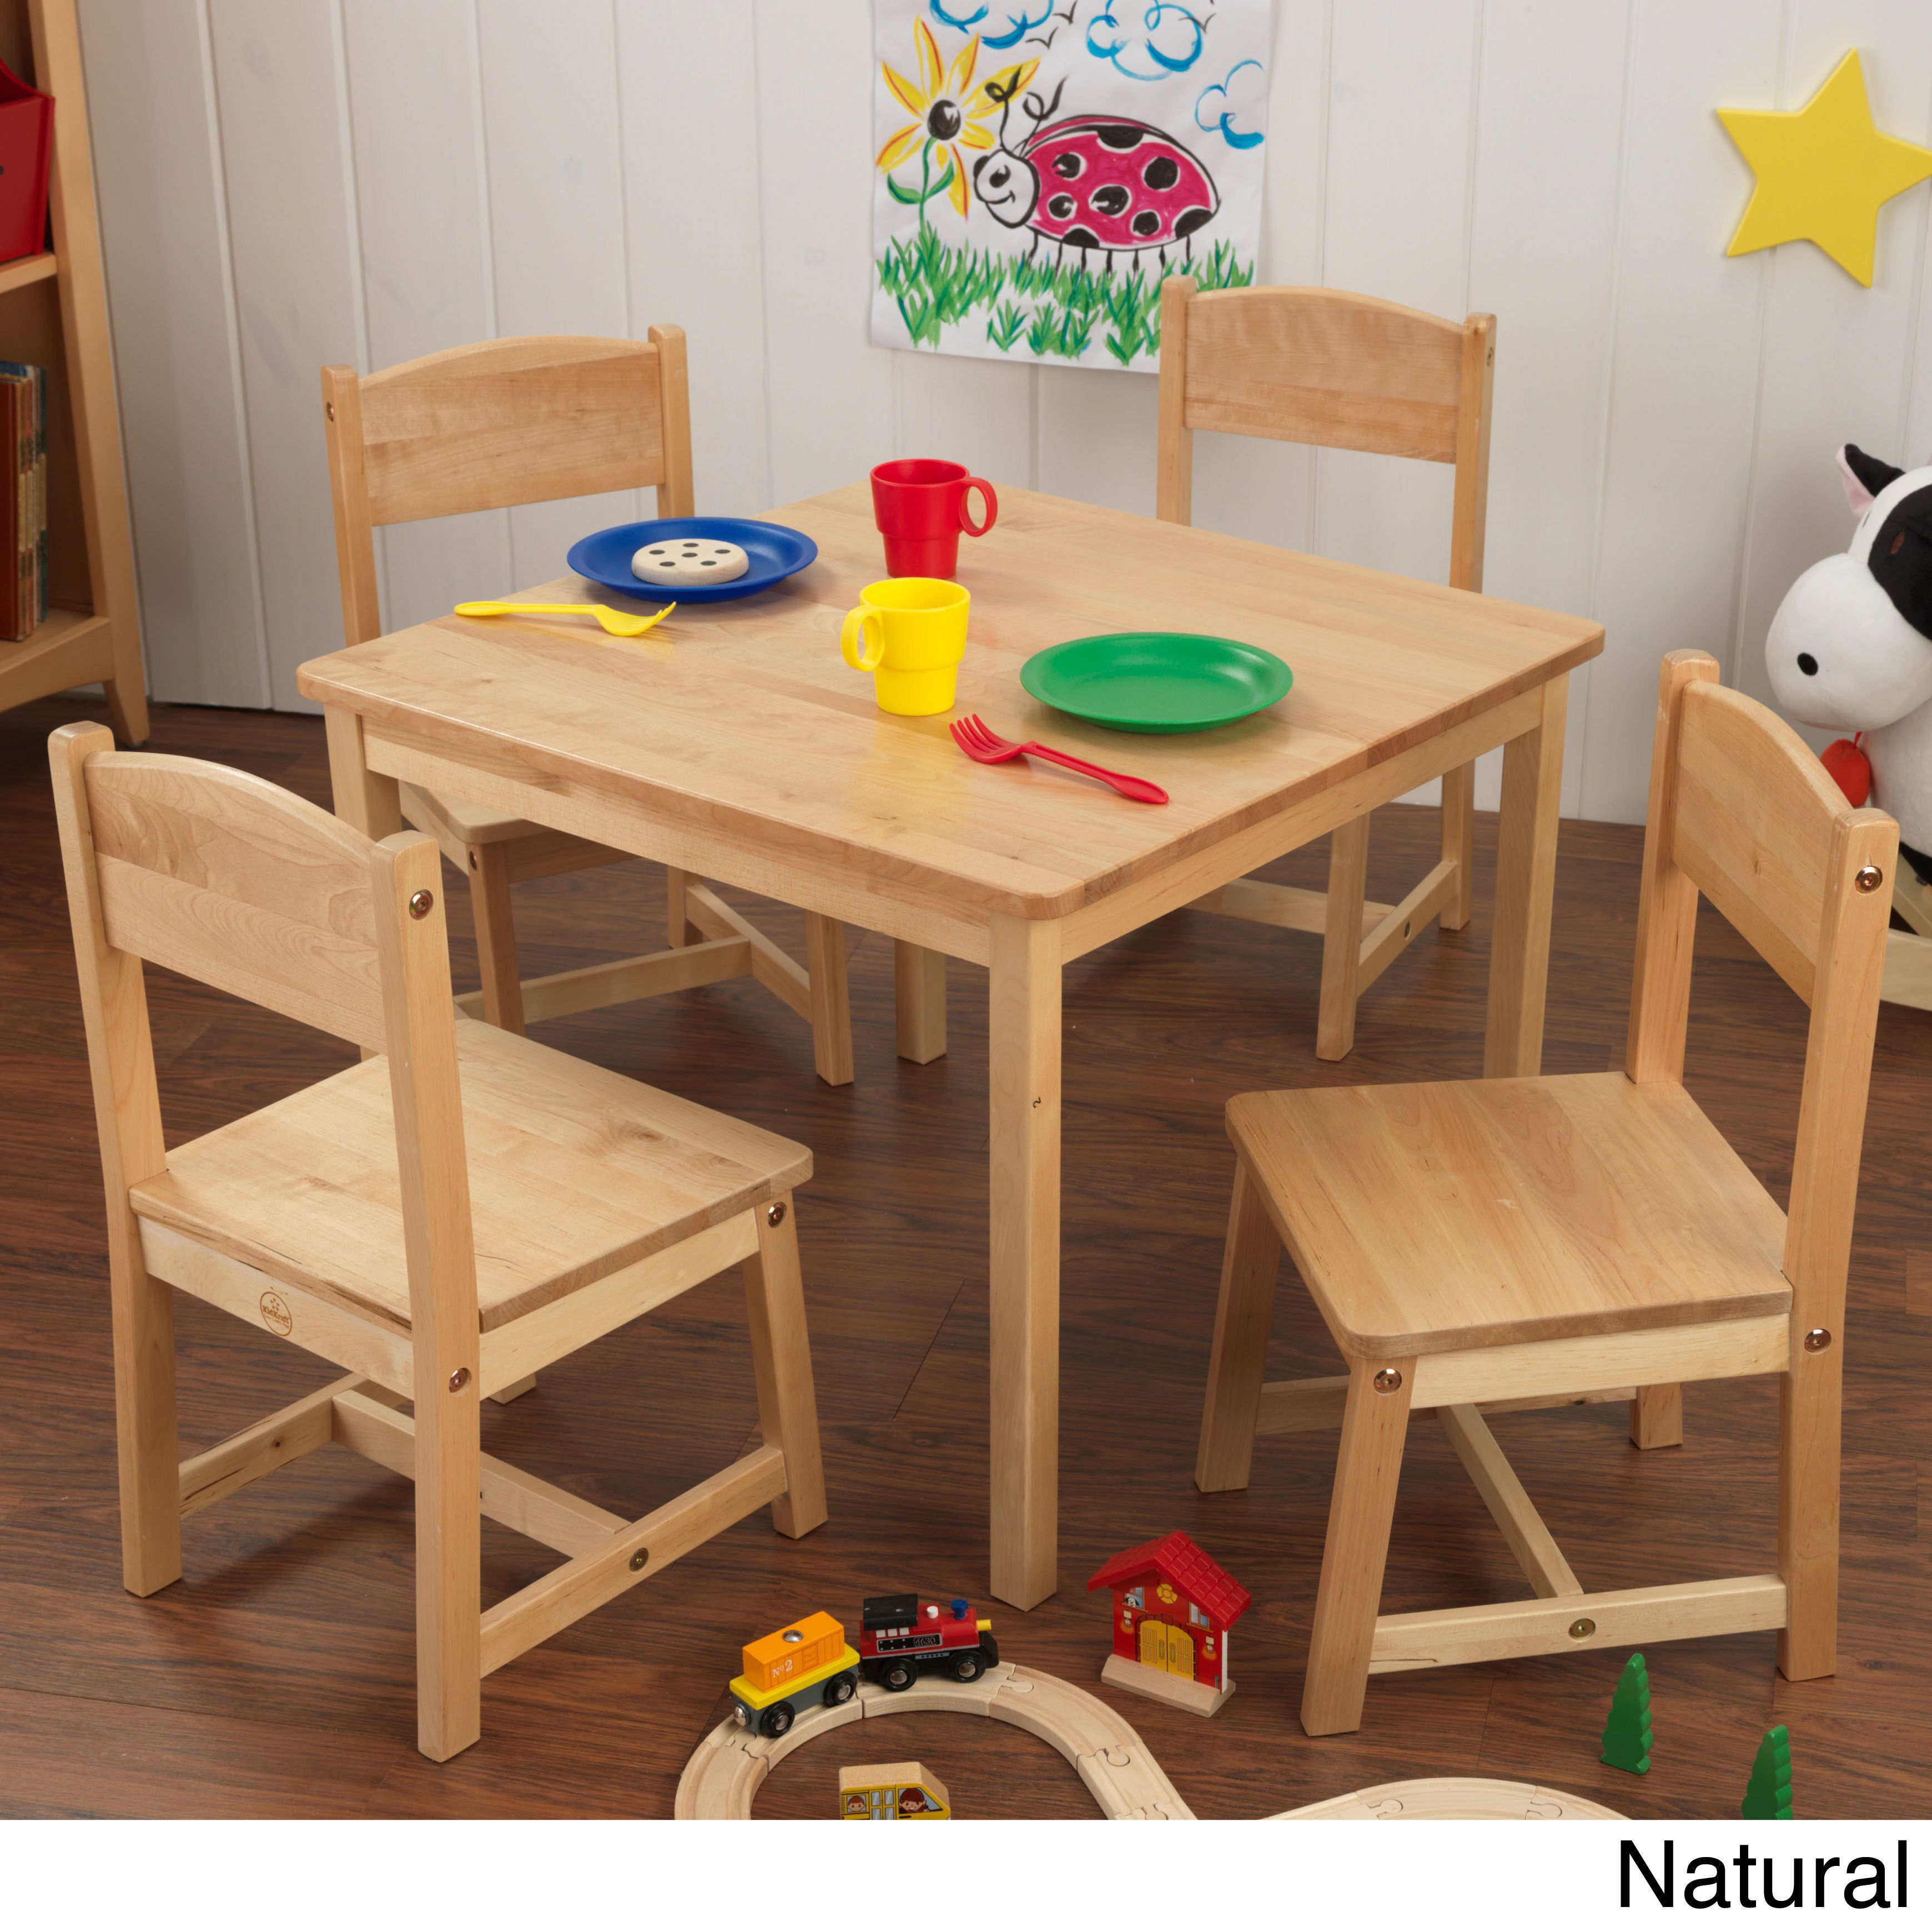 Kids Table And Chairs Set Espresso: KidKraft Farmhouse 5-piece Table And Chairs Set (Espresso